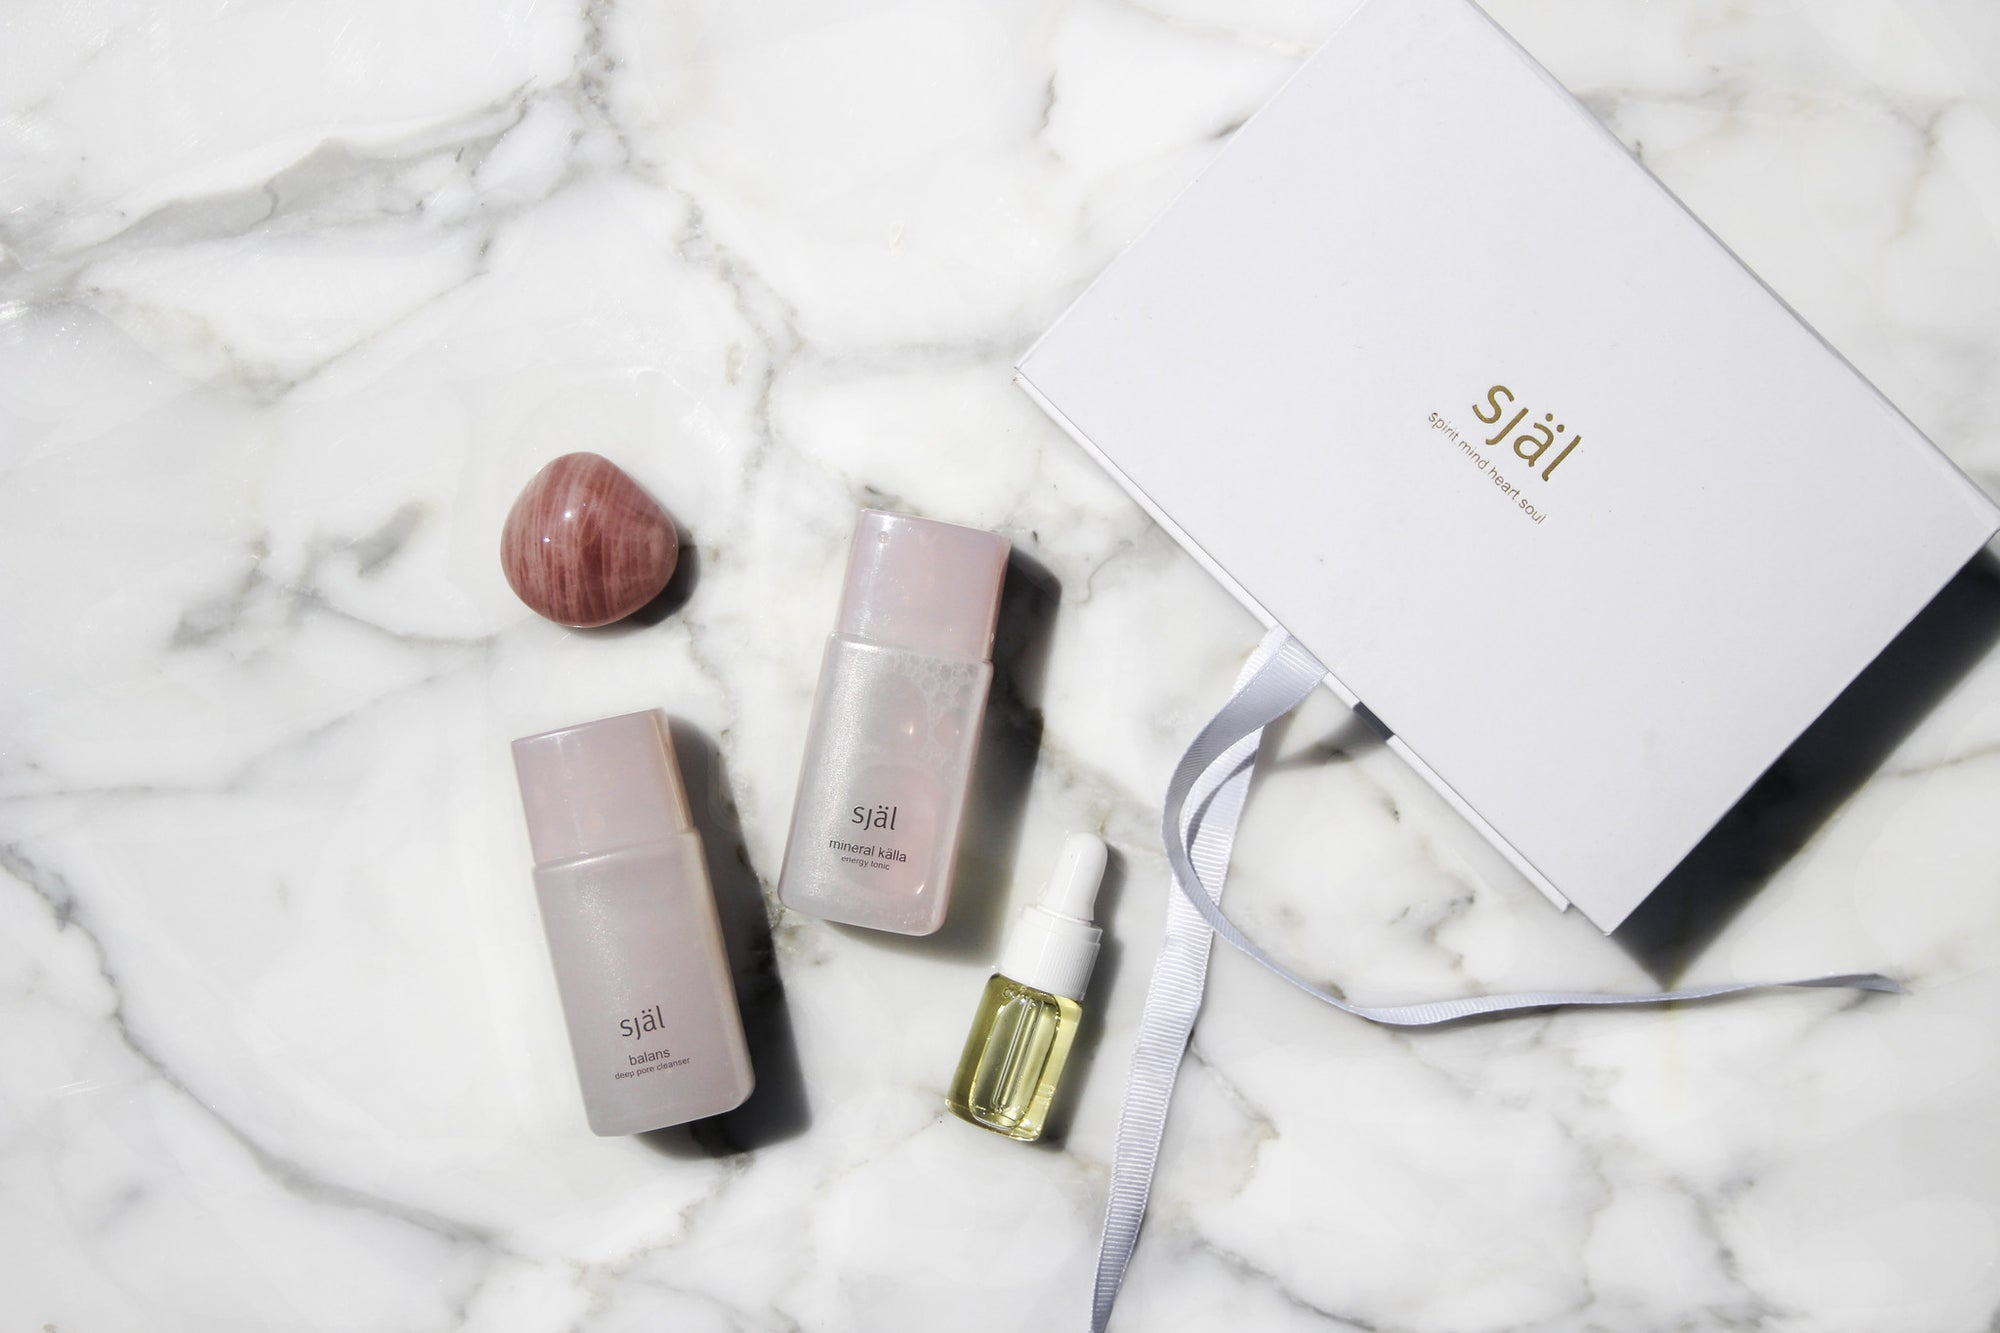 Receive a complimentary Rose Gold Cleansing Revitalizing Set from Själ Skincare.